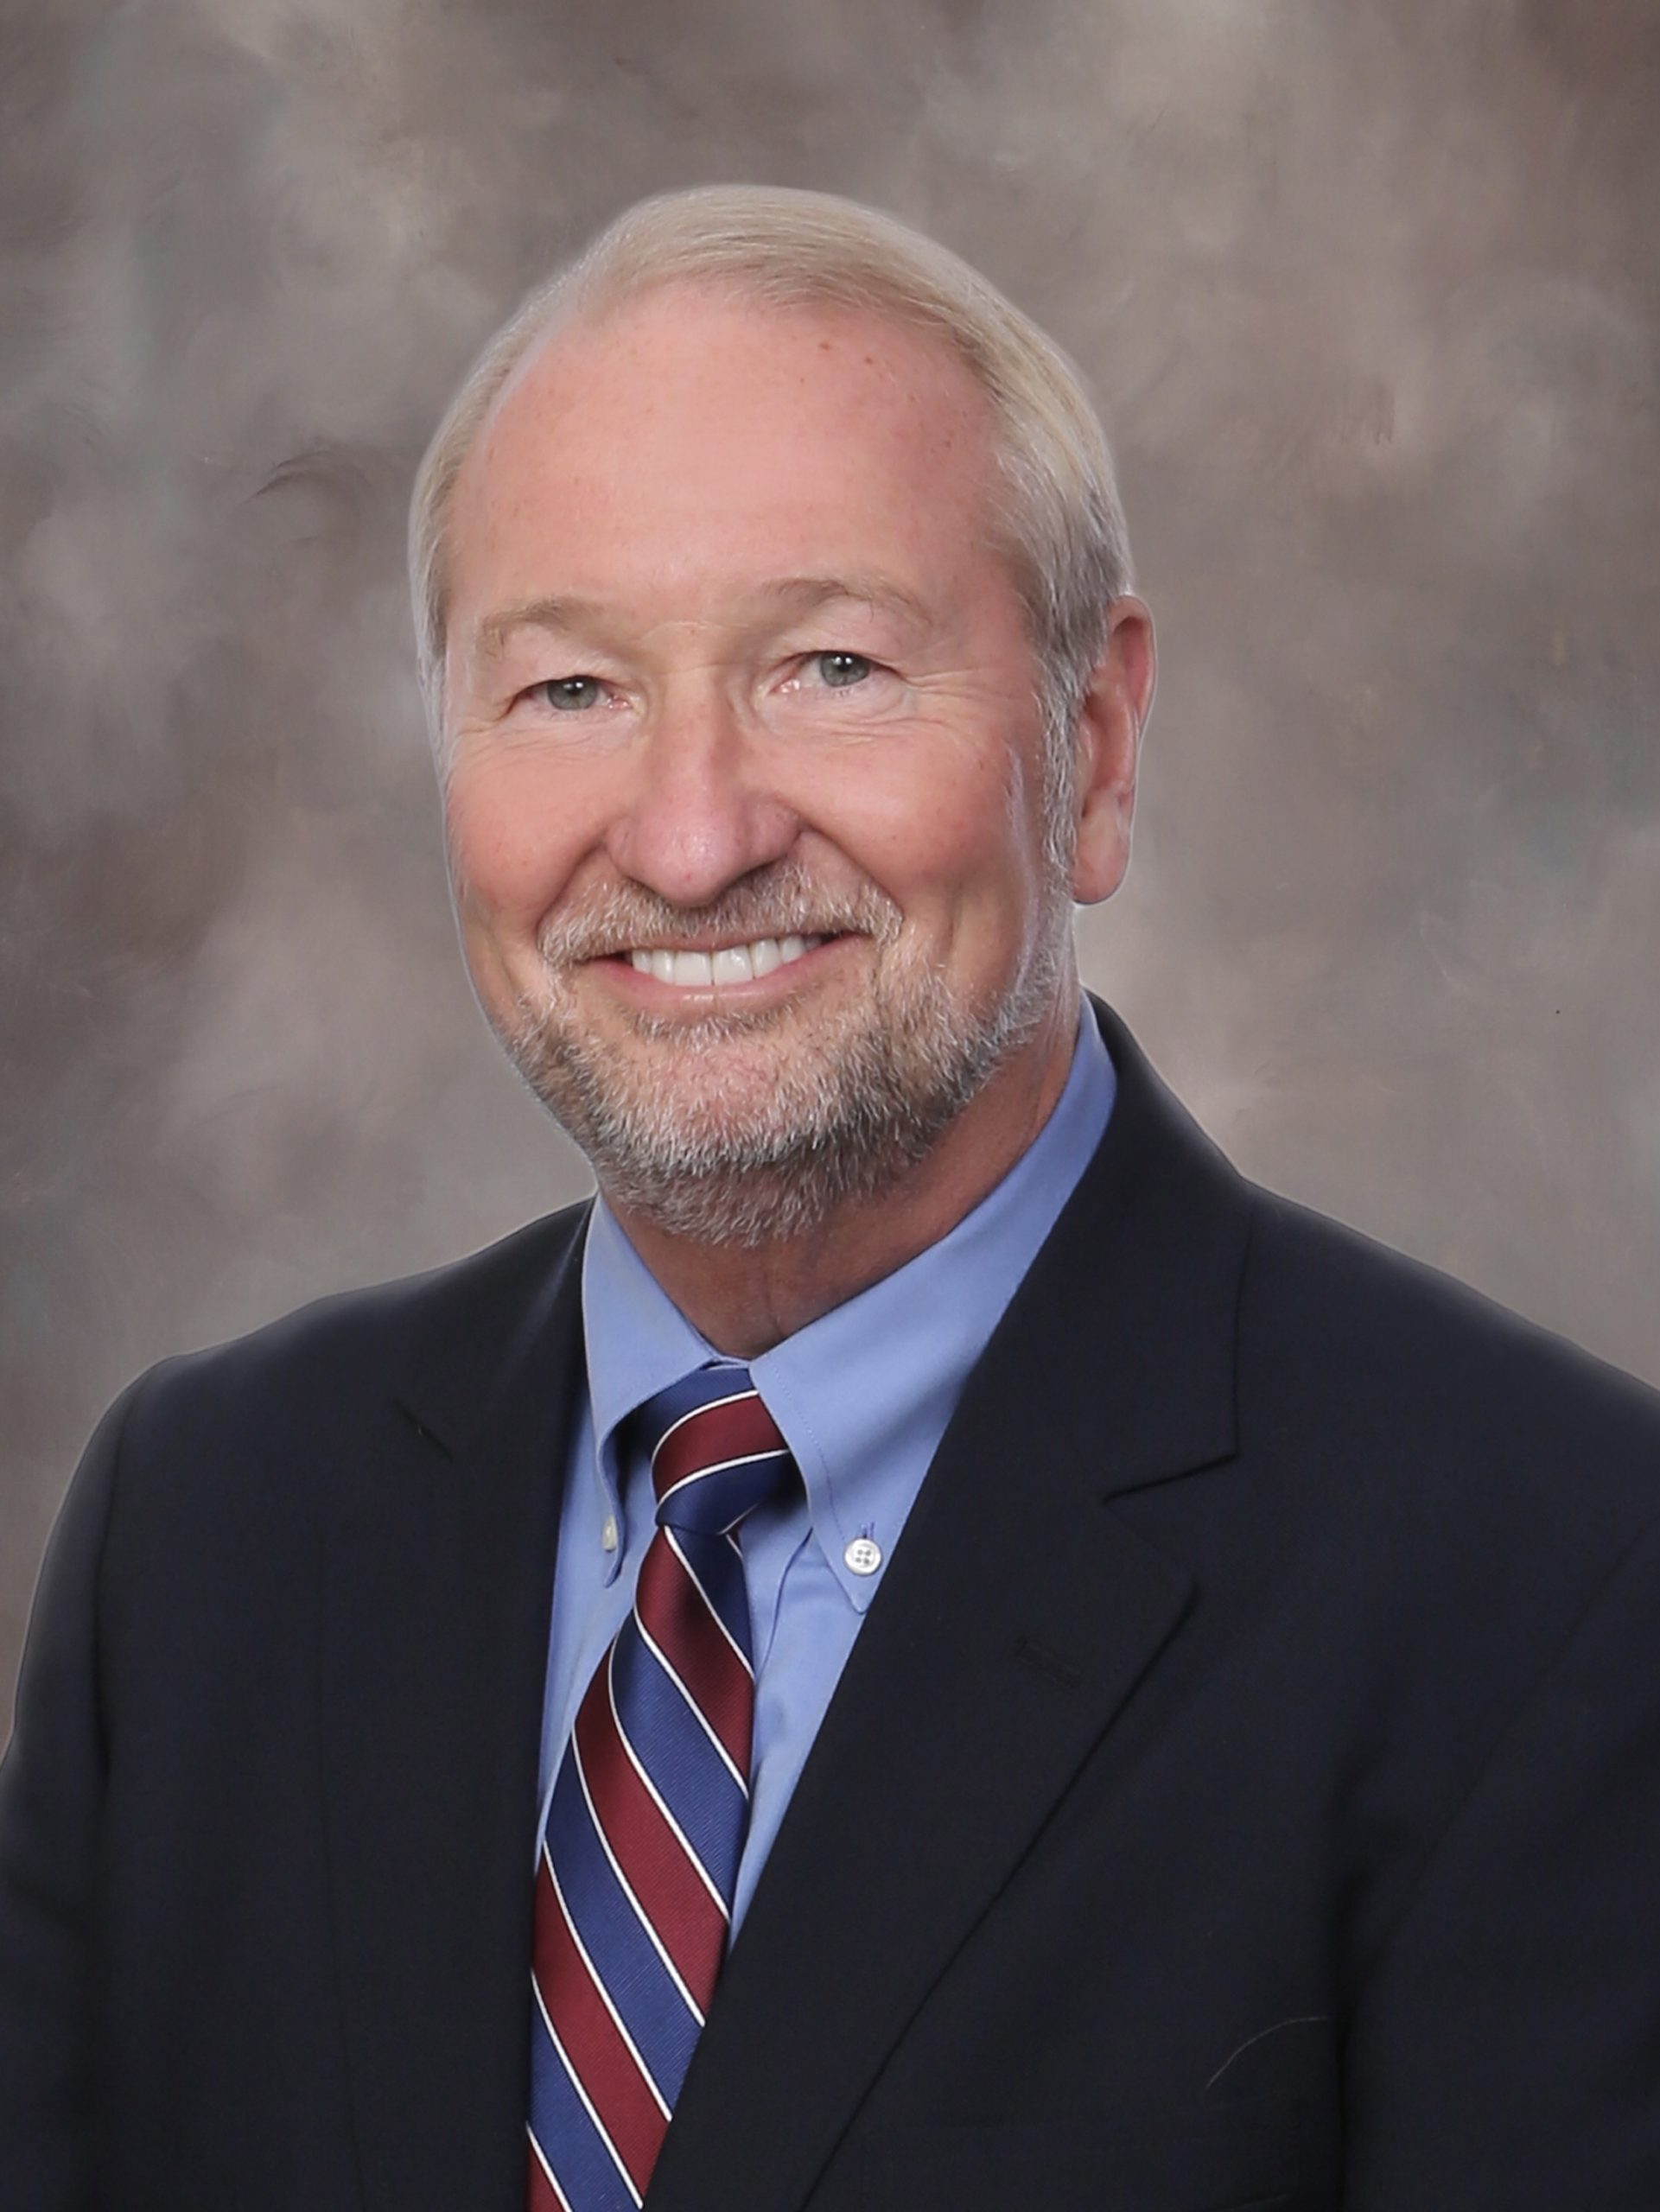 Health Alliance Medical Plans names new Chief Executive Officer